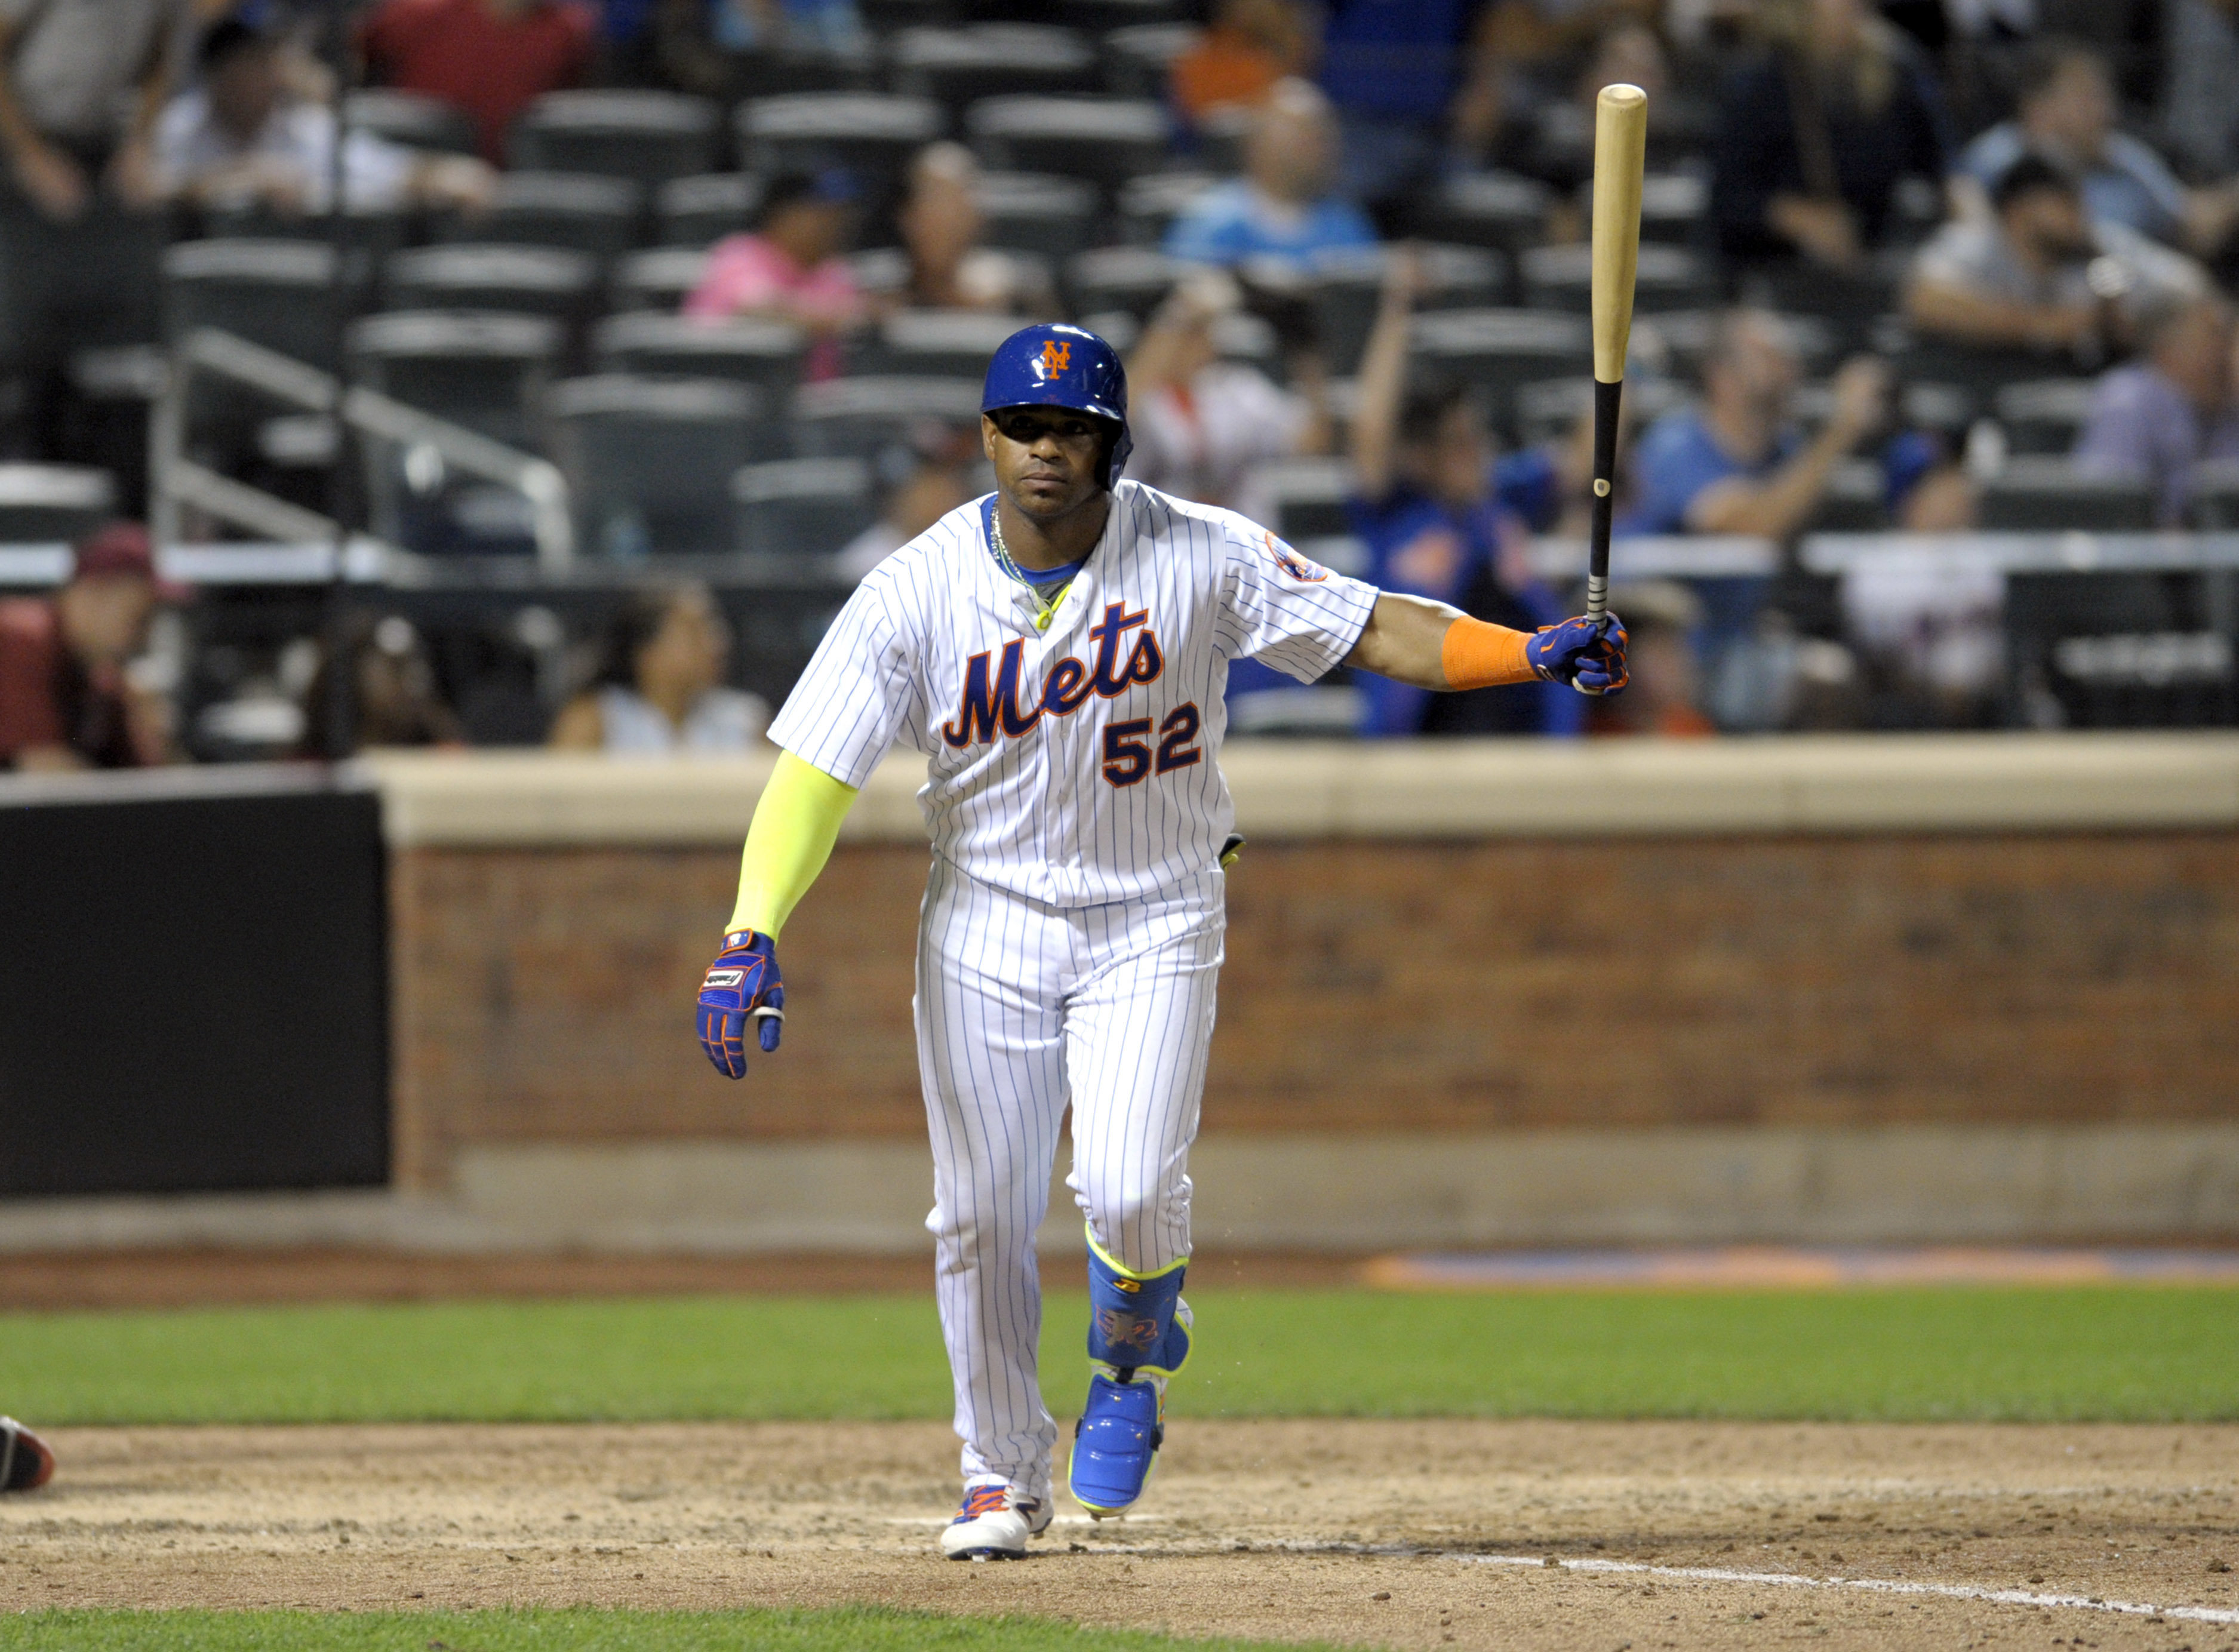 New York Mets' Yoenis Cespedes reacts after hitting a walk-off home run during the tenth inning of a baseball game against the Miami Marlins, Monday, Aug. 29, 2016 at Citi Field in New York. The Mets won 2-1. (AP Photo/Bill Kostroun)